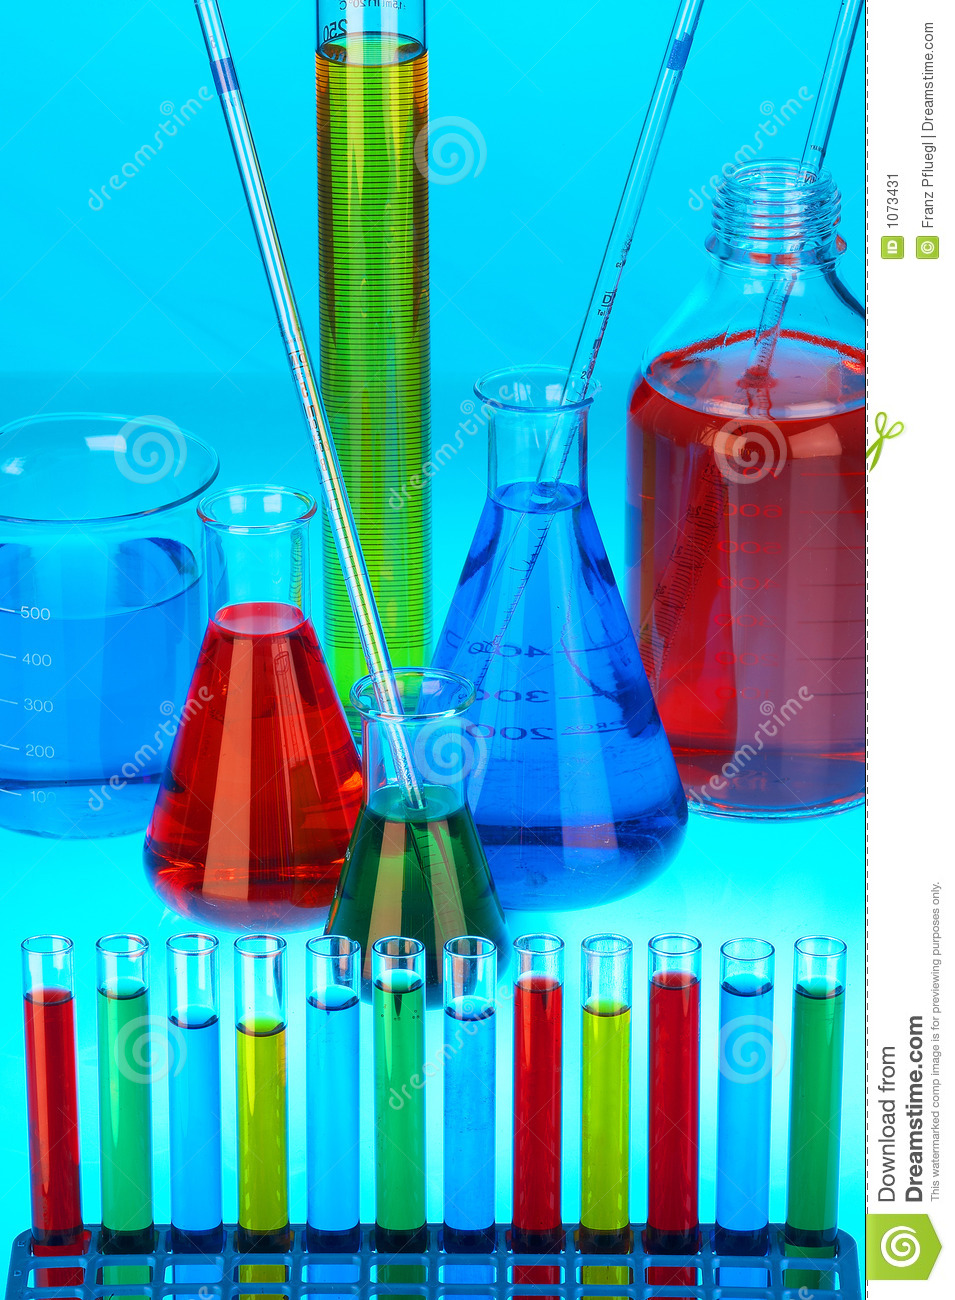 chemical liquids stock image  image of chemical  pharmaceuticals